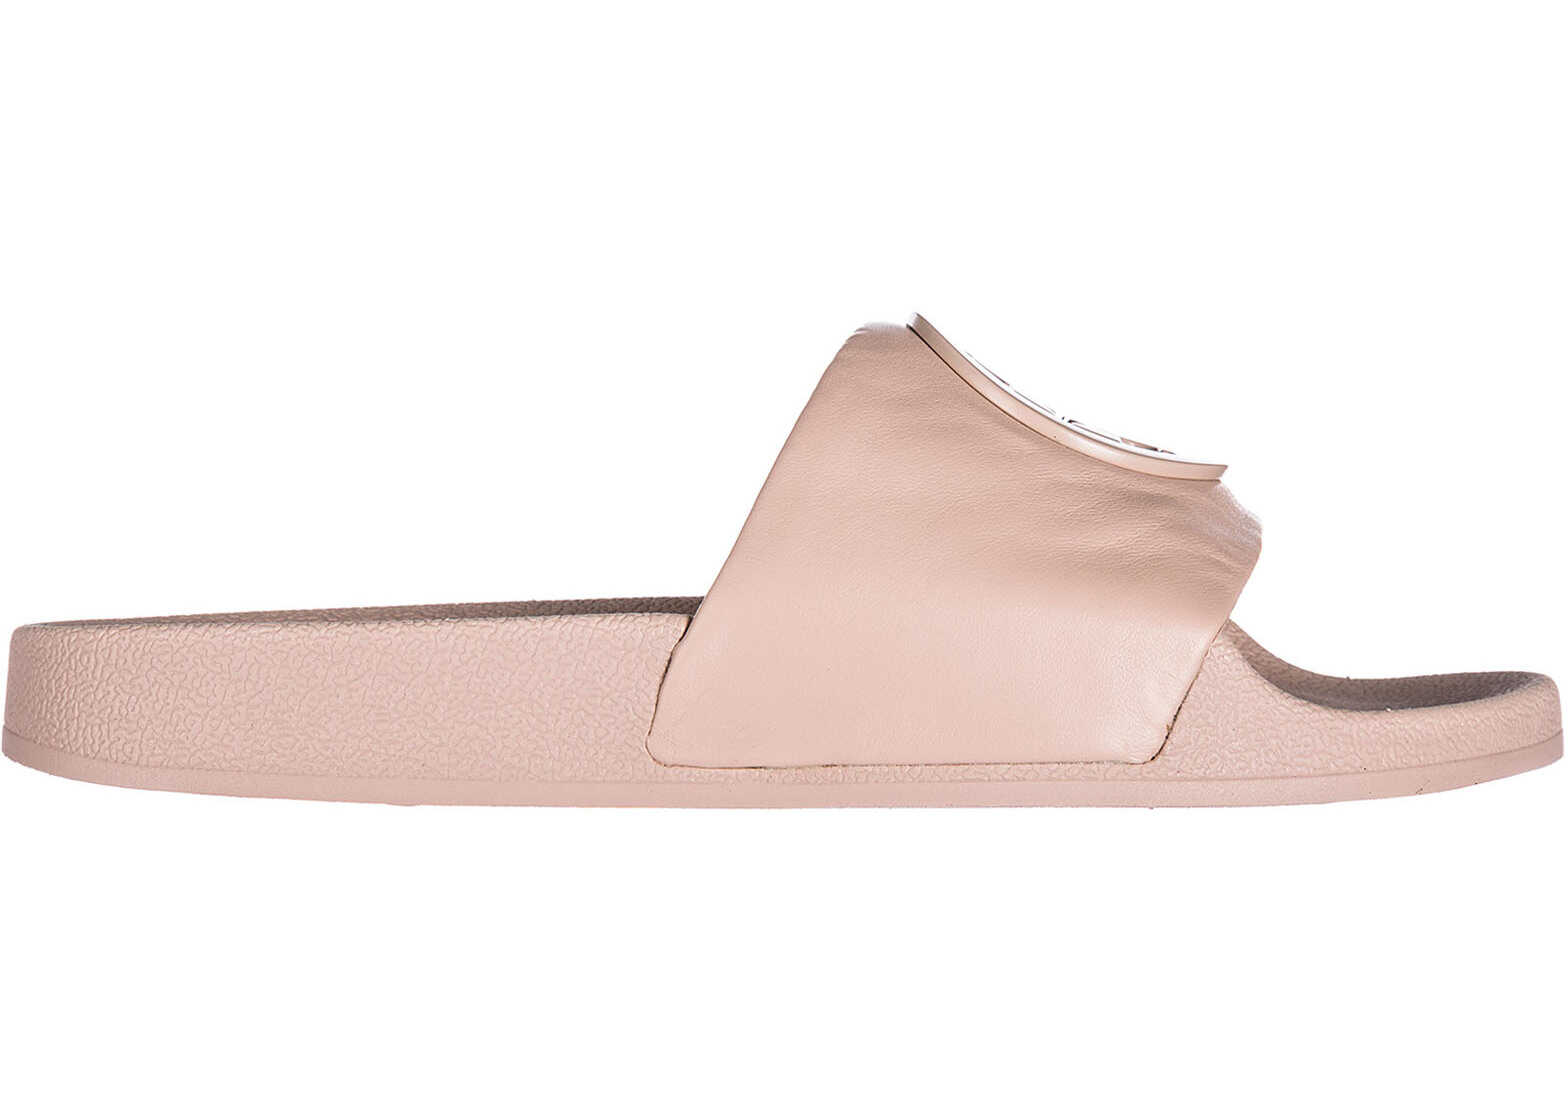 Tory Burch Pantolette Lina Pink